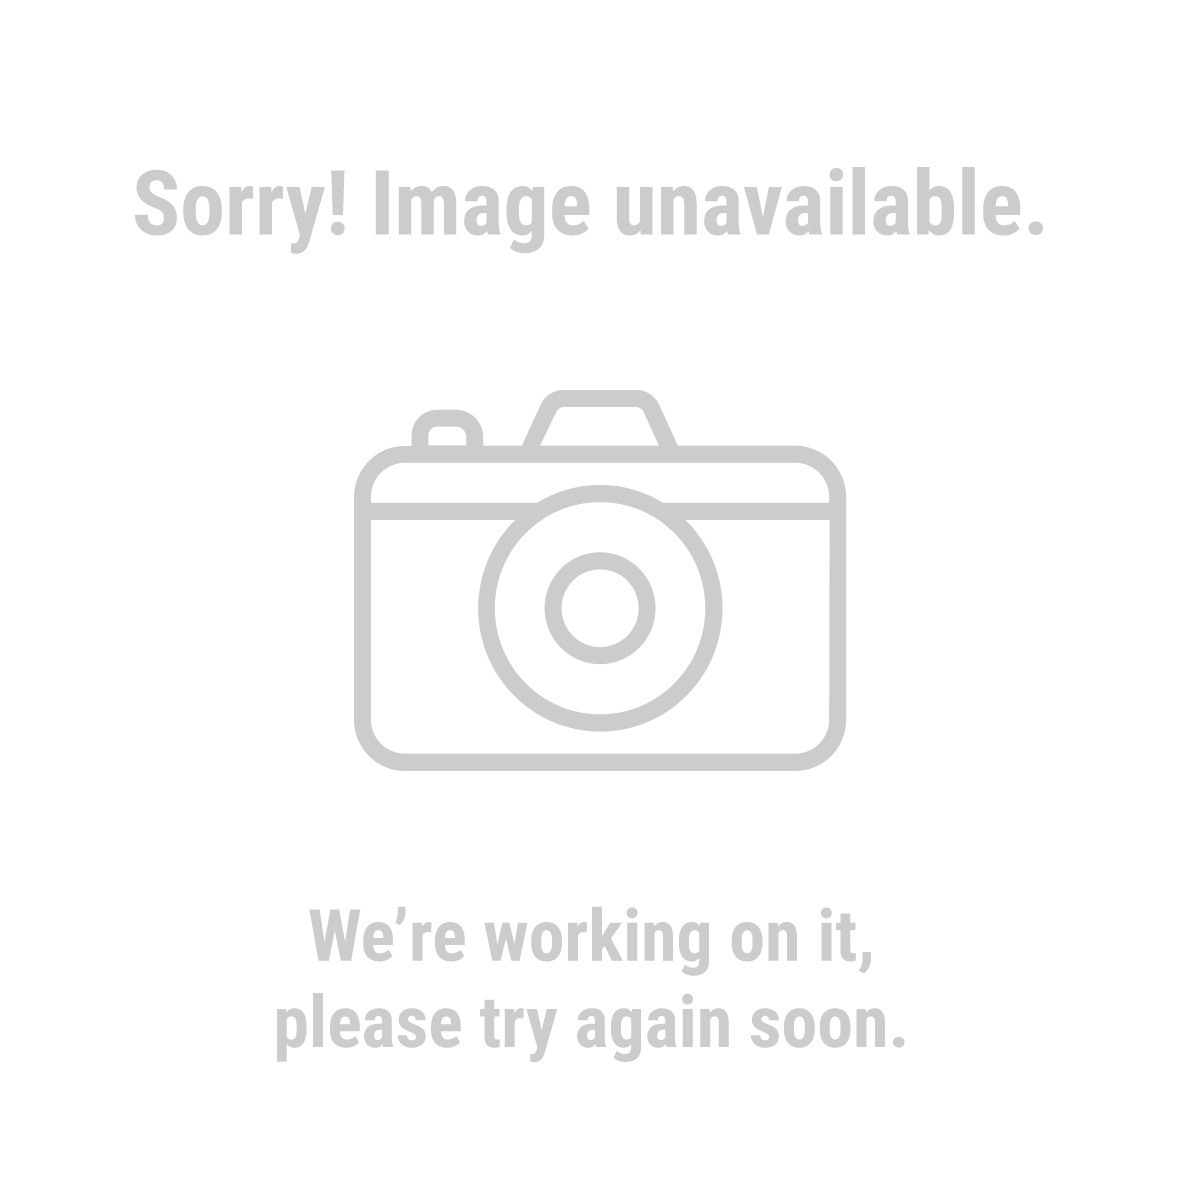 Bauer 63441 1-9/16 in. 10.5 Amp Heavy Duty SDS Max Variable Speed Rotary Hammer